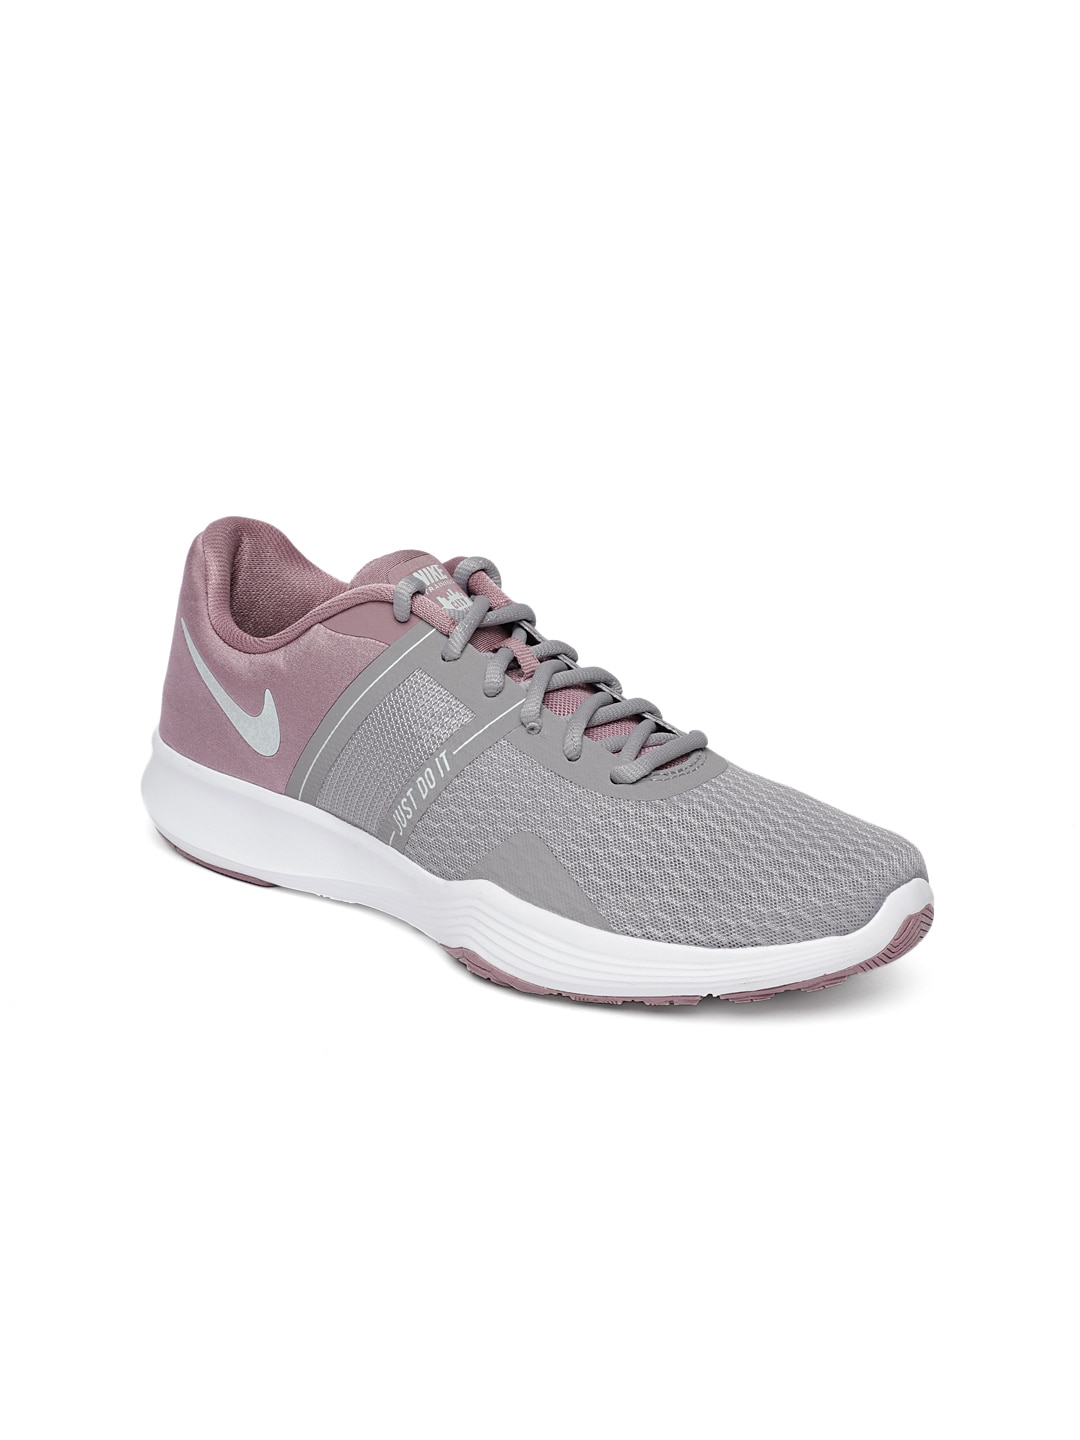 Nike Shoes - Buy Nike Shoes for Men   Women Online  c1b620f3dc